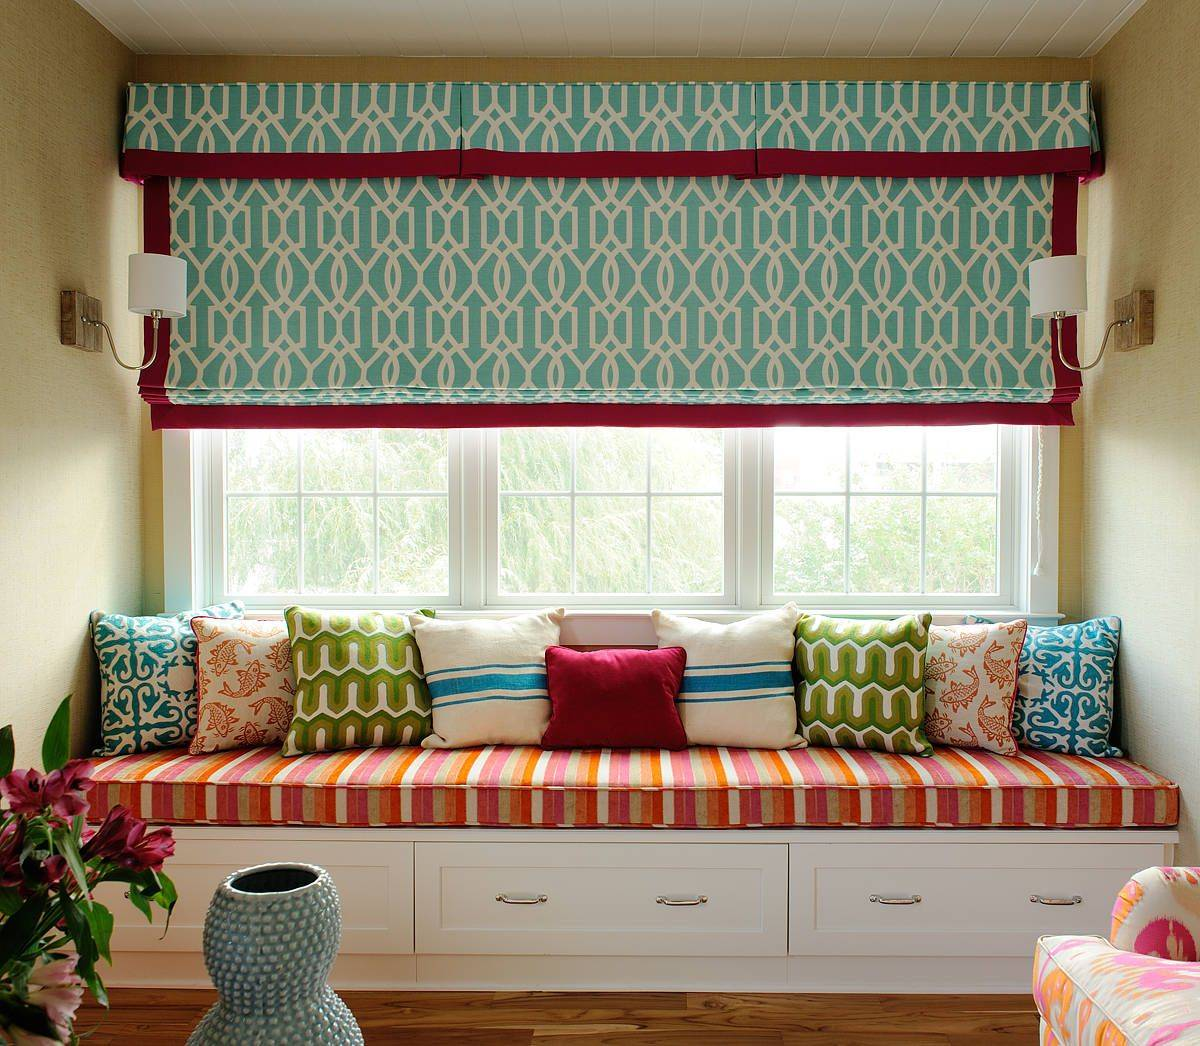 Delightful-window-seat-in-the-family-room-brings-colorful-personality-to-the-space-65725